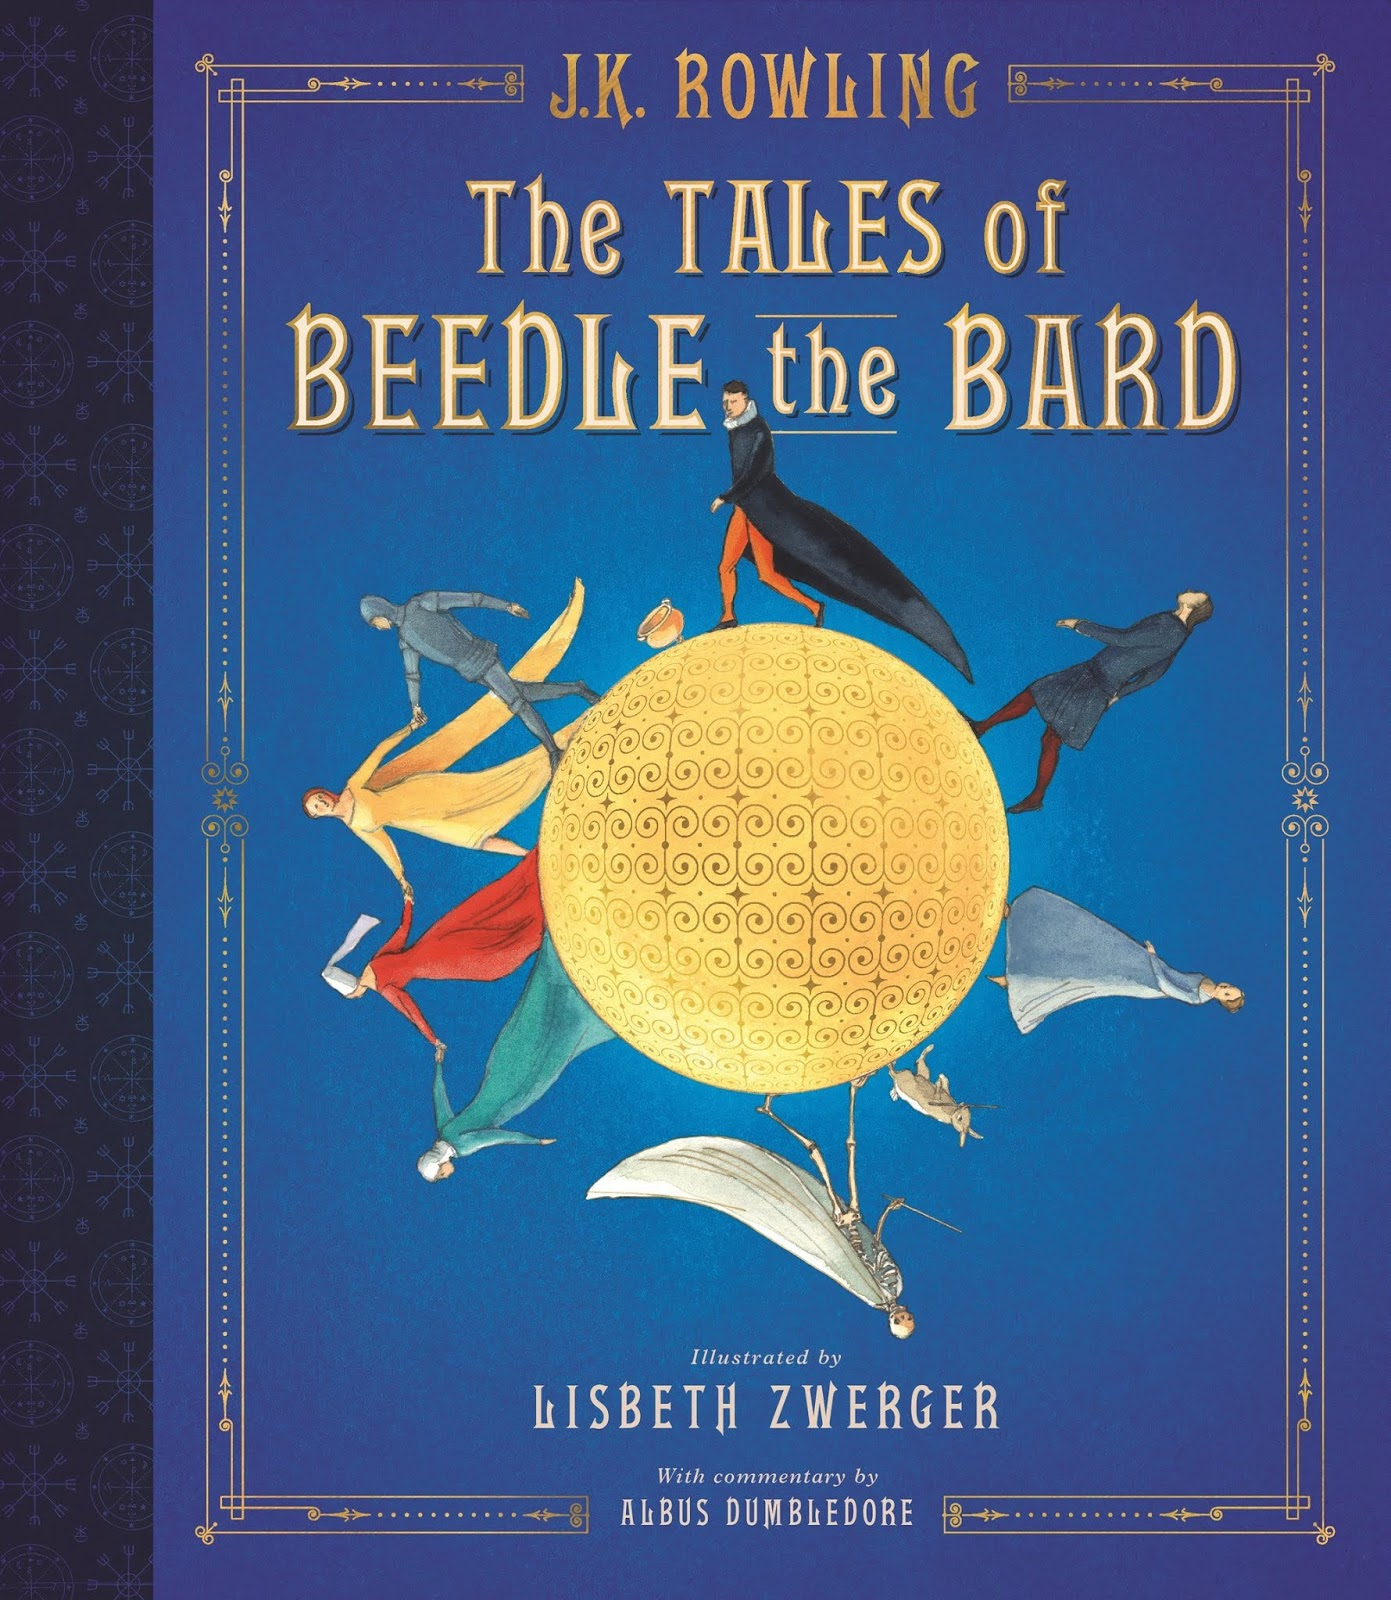 Tales of Beedle the Bard (US Edition) by J.K. Rowling